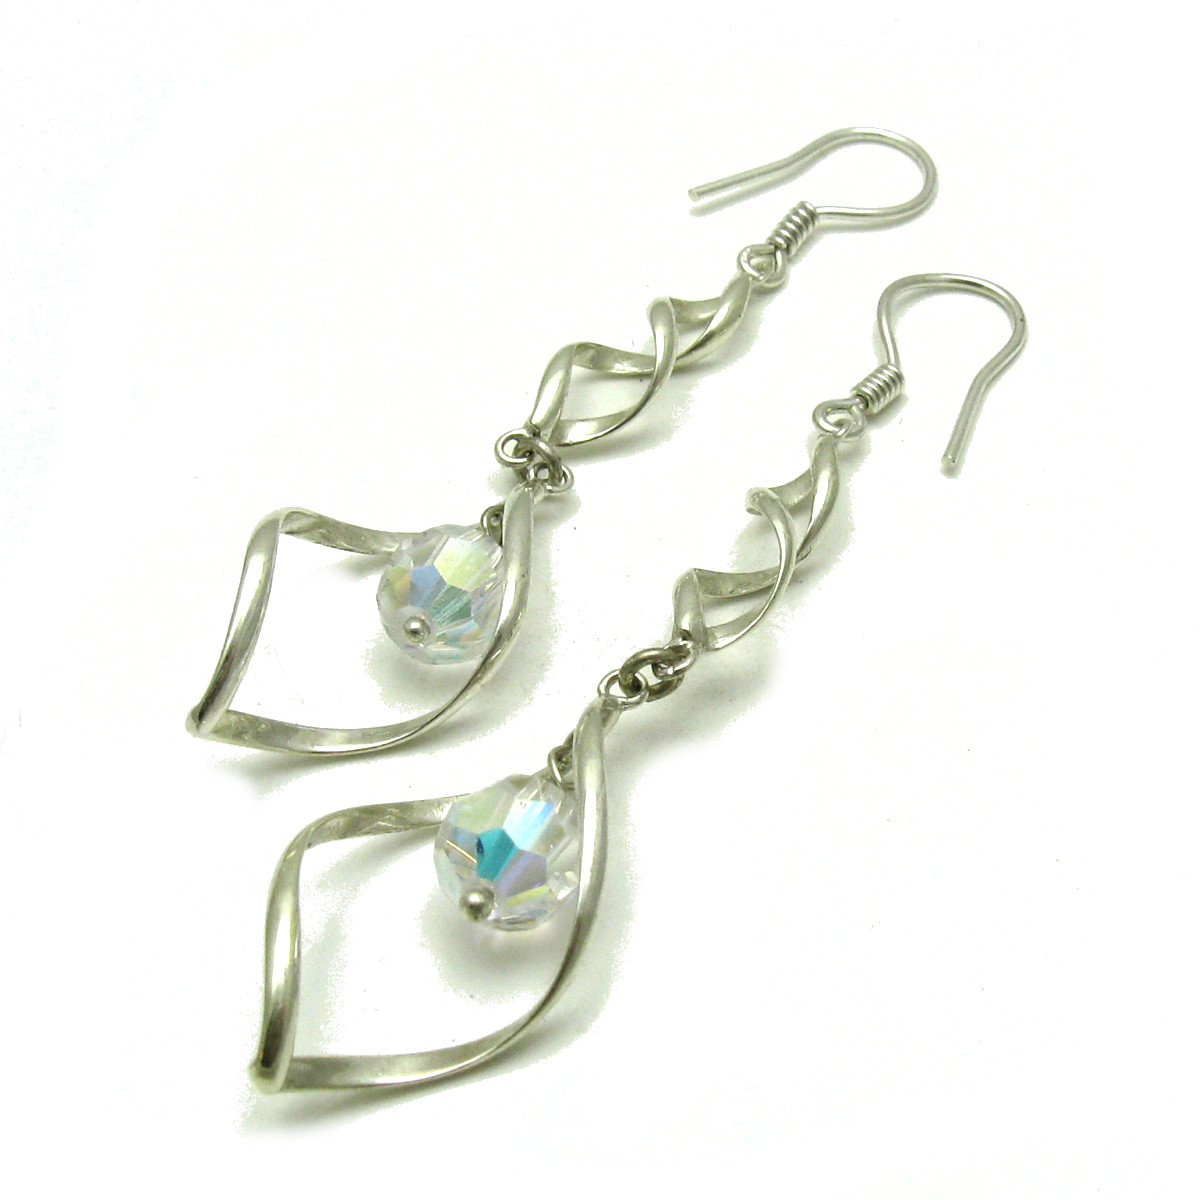 Silver earrings - E000592